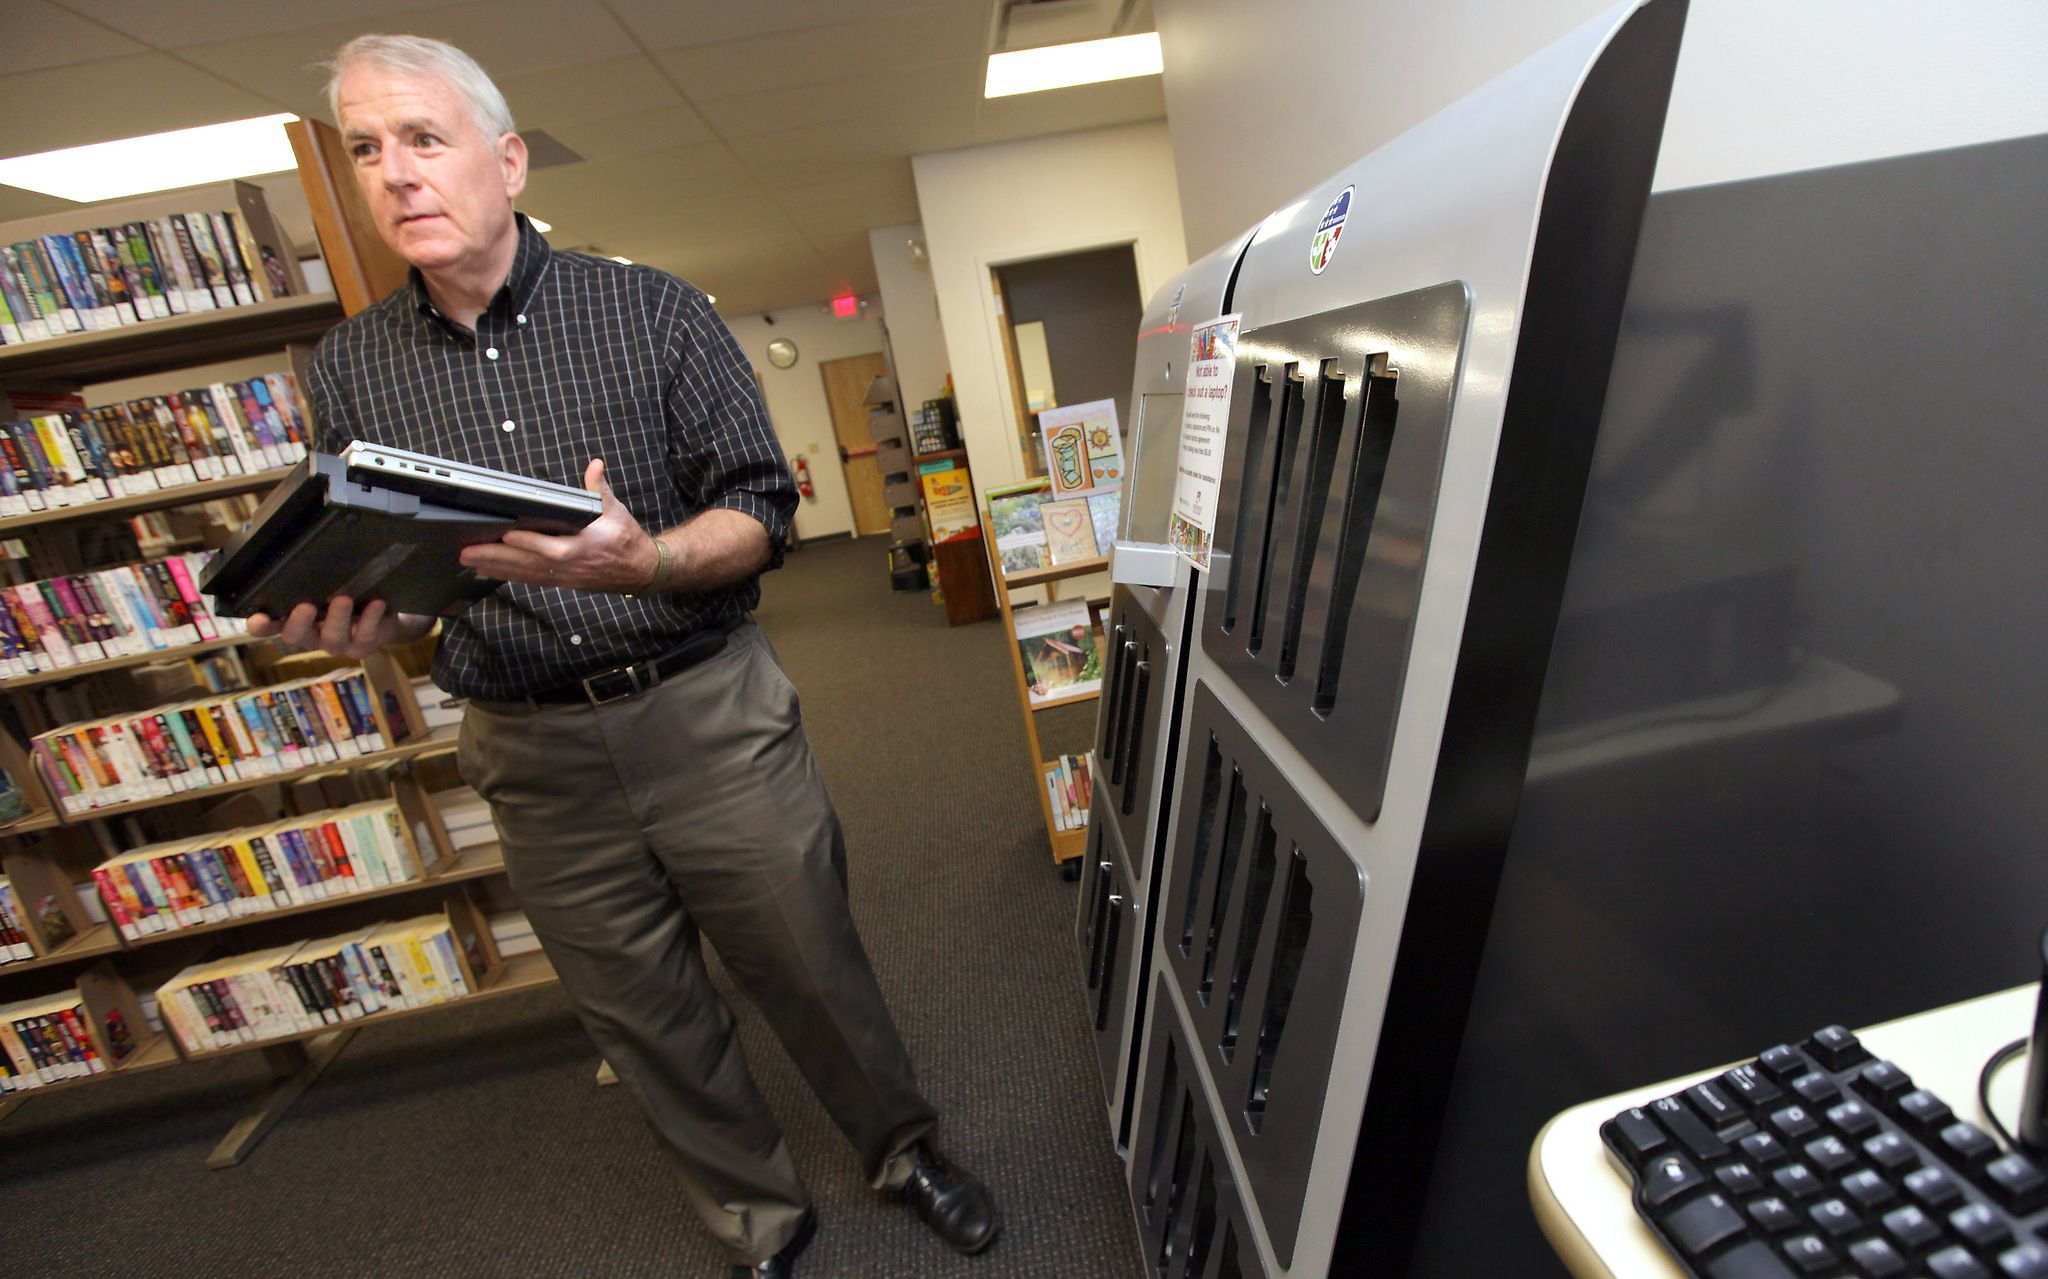 Mayor Tom Barrett says he's 'doubling down' on the city's branch library system, spending $22.4 million over the next few years.